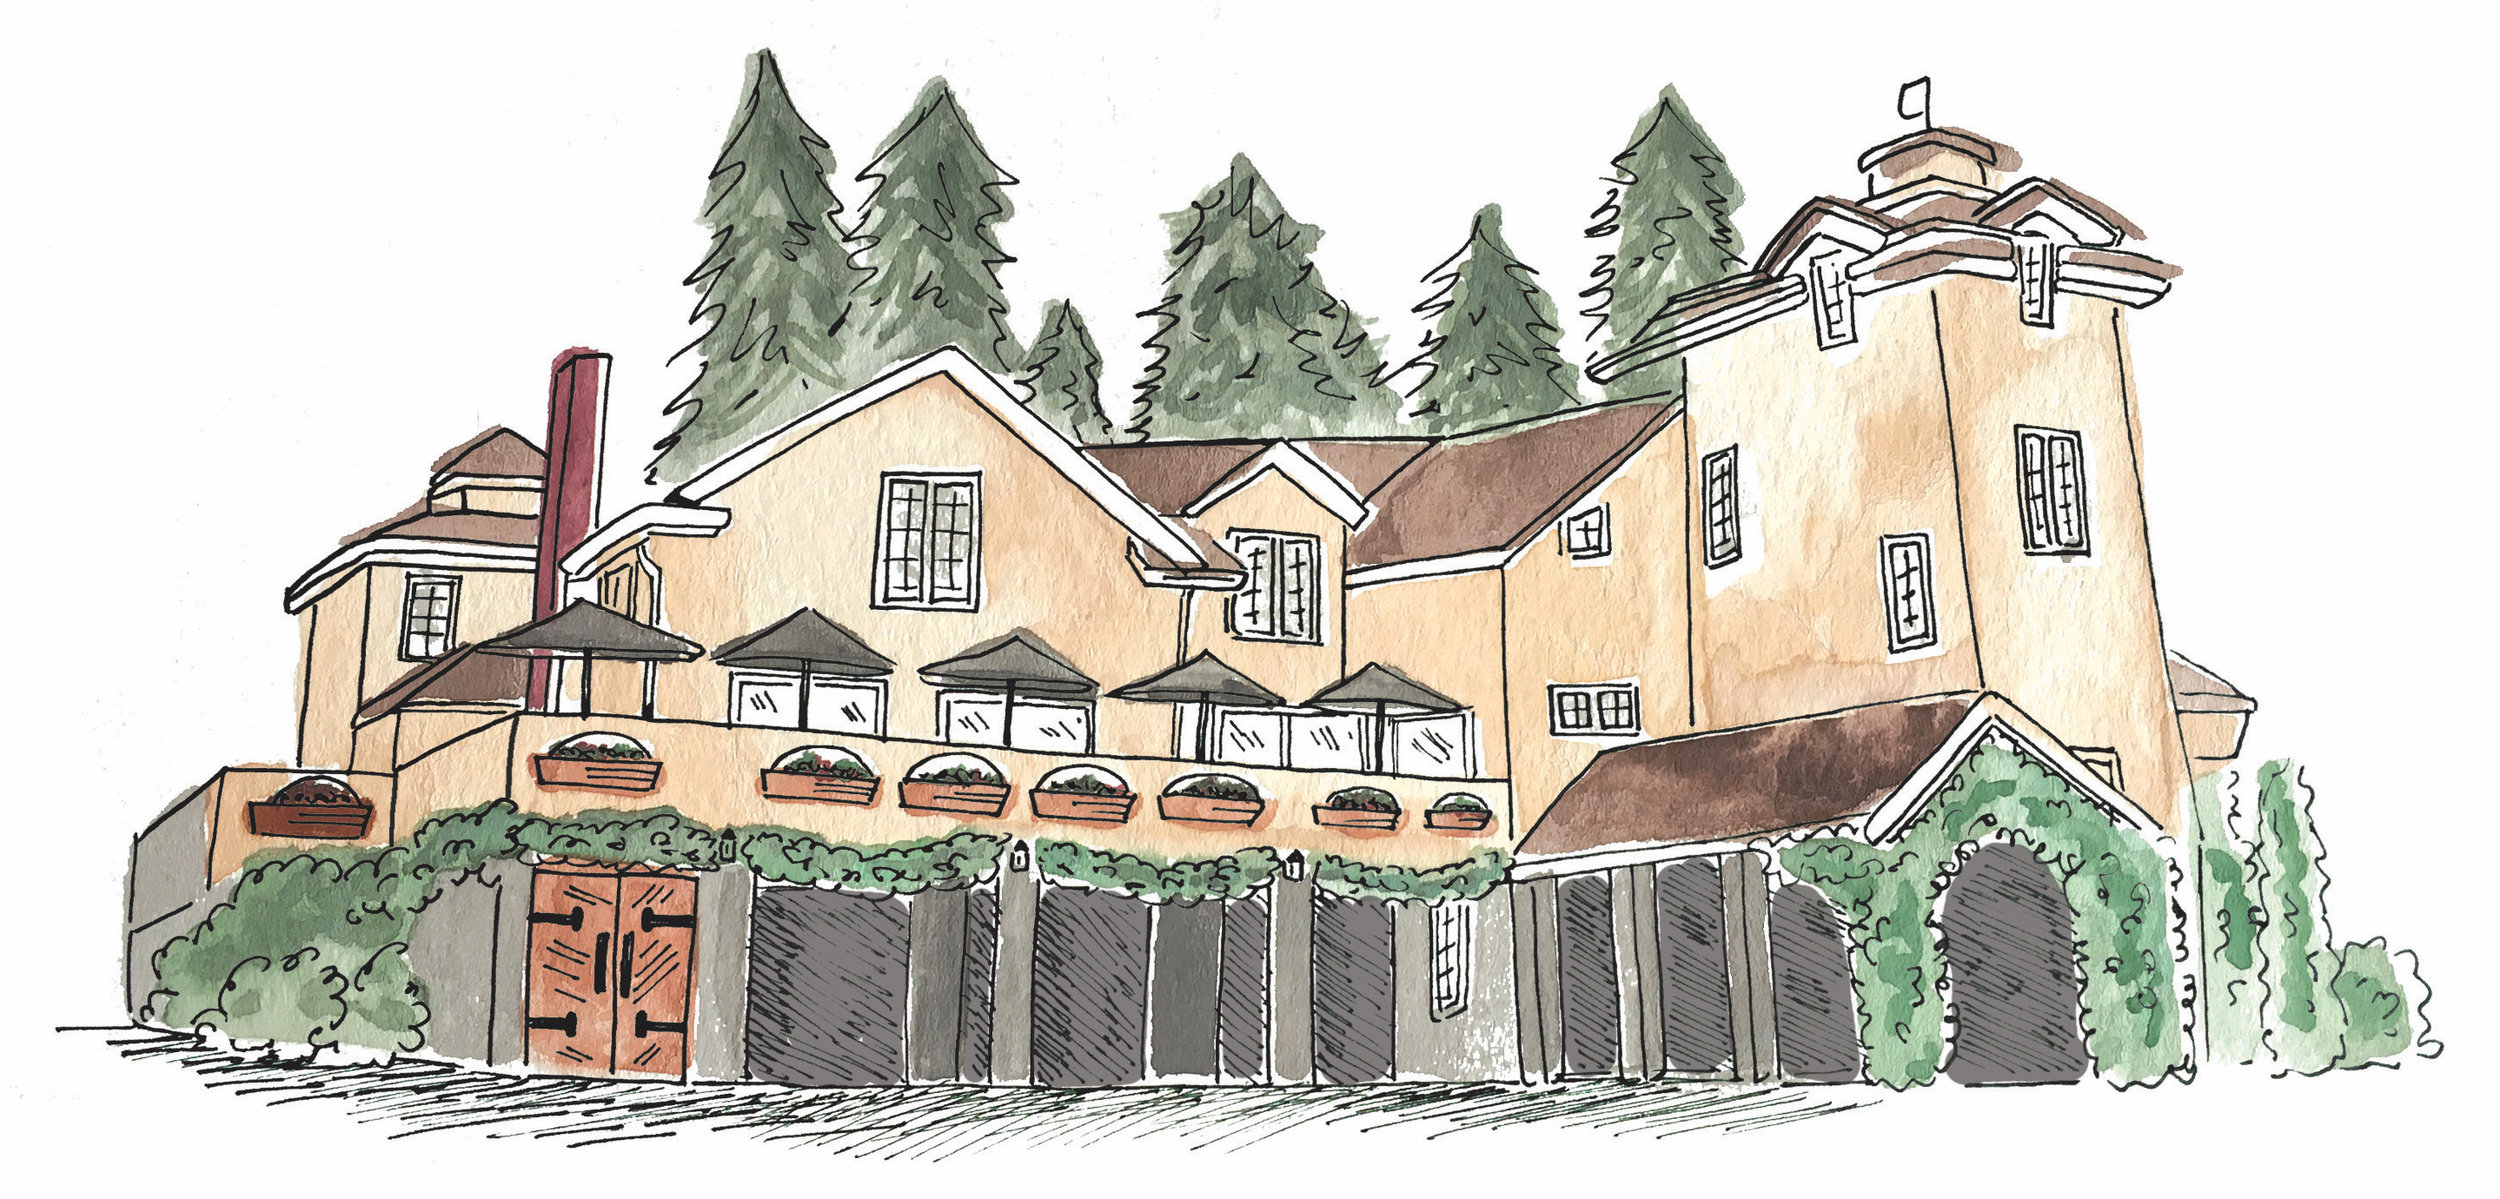 venue illustration of delille cellars by elisaanne calligraphy. all illustrations are property of elisaanne calligraphy and may not be used in any manner without written permission from elisaanne calligraphy.